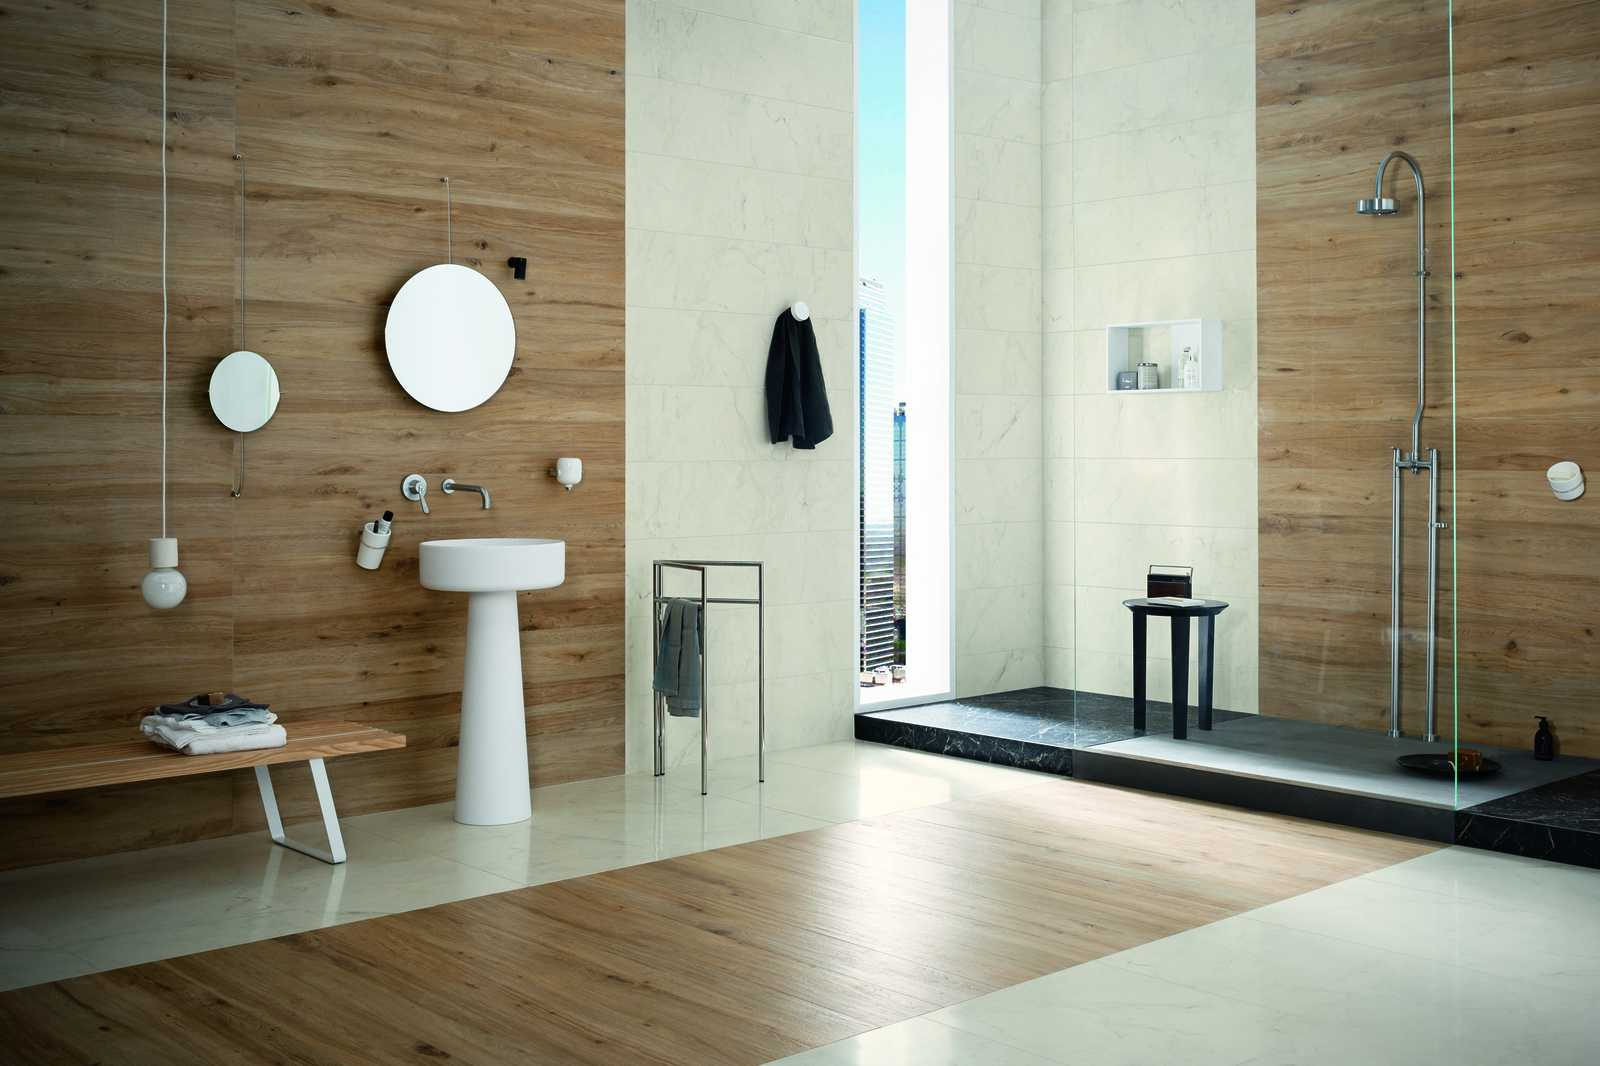 allmarble ceramic tiles marazzi_7101 - Bathroom Tiles Marble